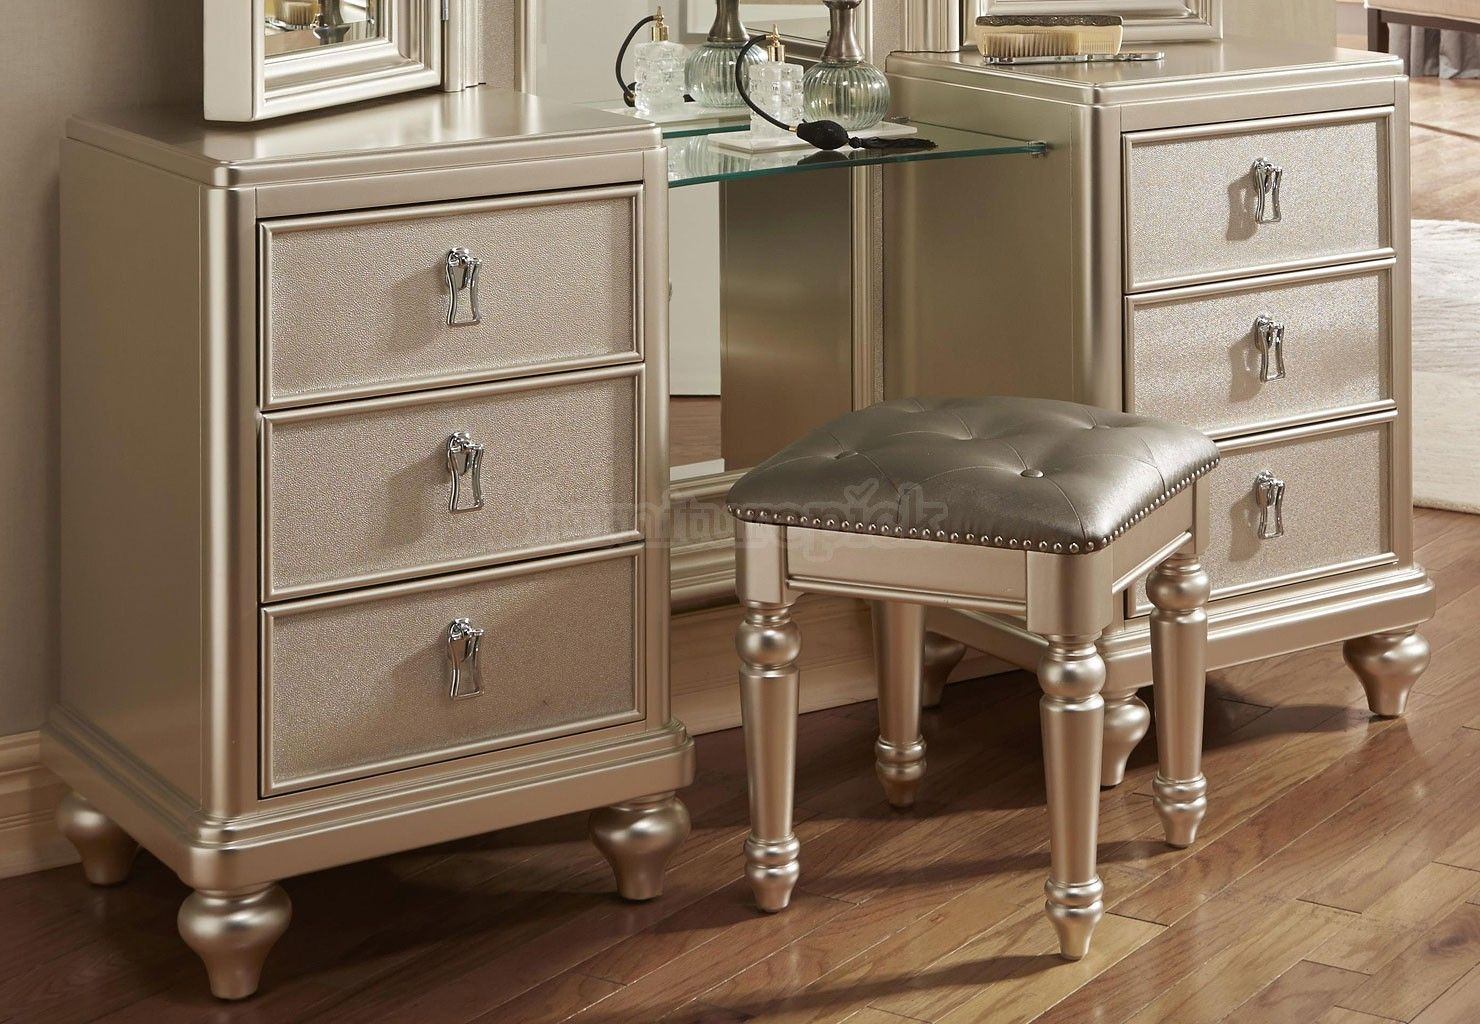 adorable bedroom sets with vanity awesome furniture design rh pinterest com Bedroom with Vanity Collection Bedroom with Vanity Collection